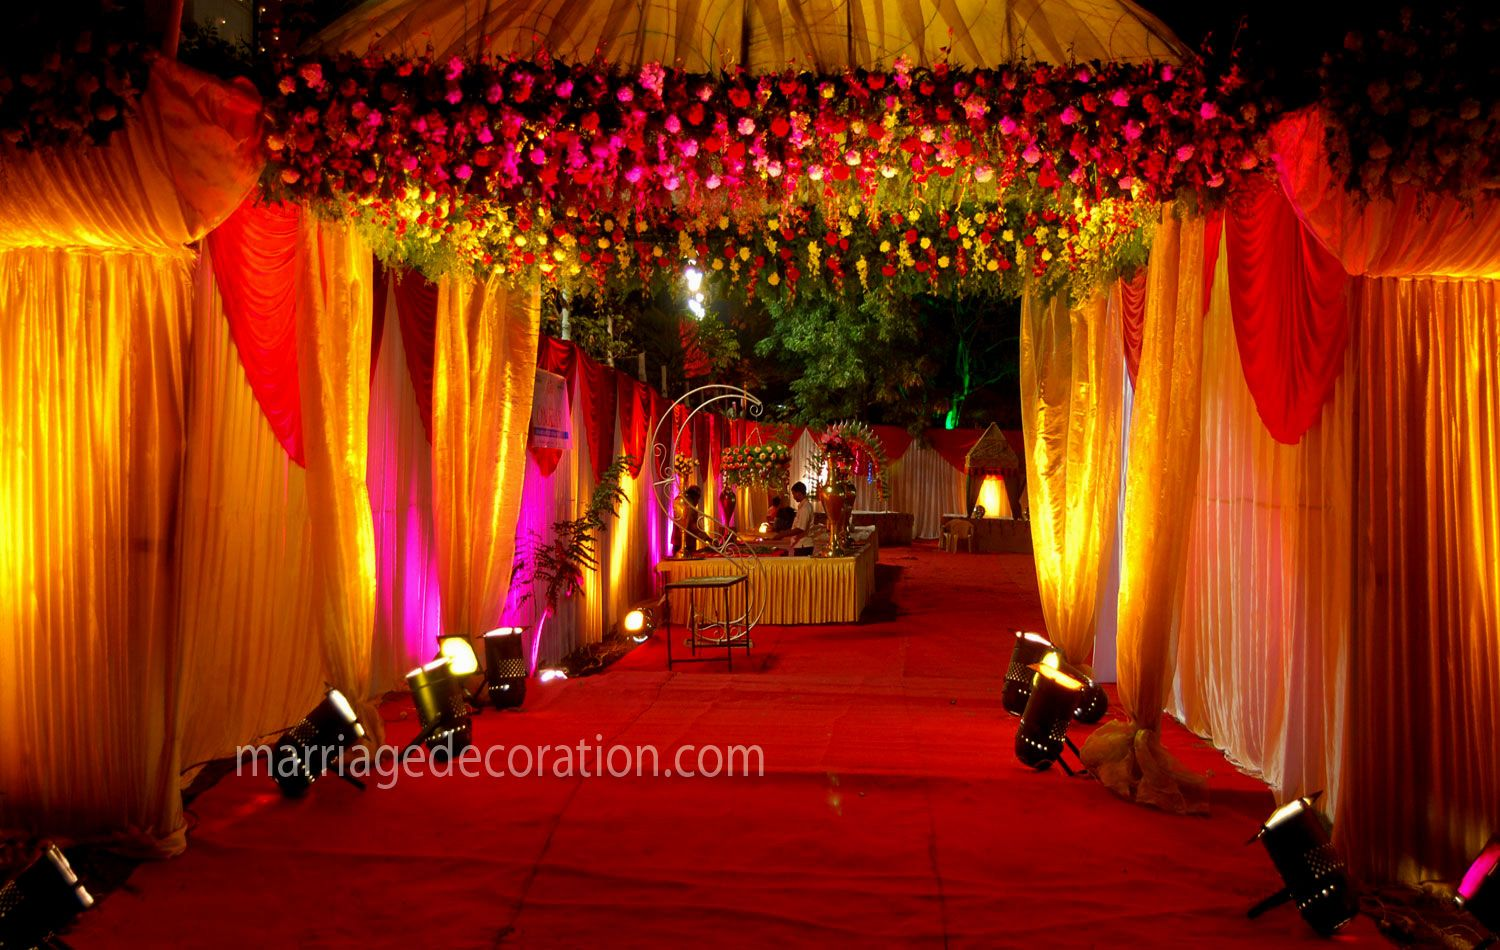 Wedding stage decoration google search decor exec pinterest wedding stage decoration google search junglespirit Image collections